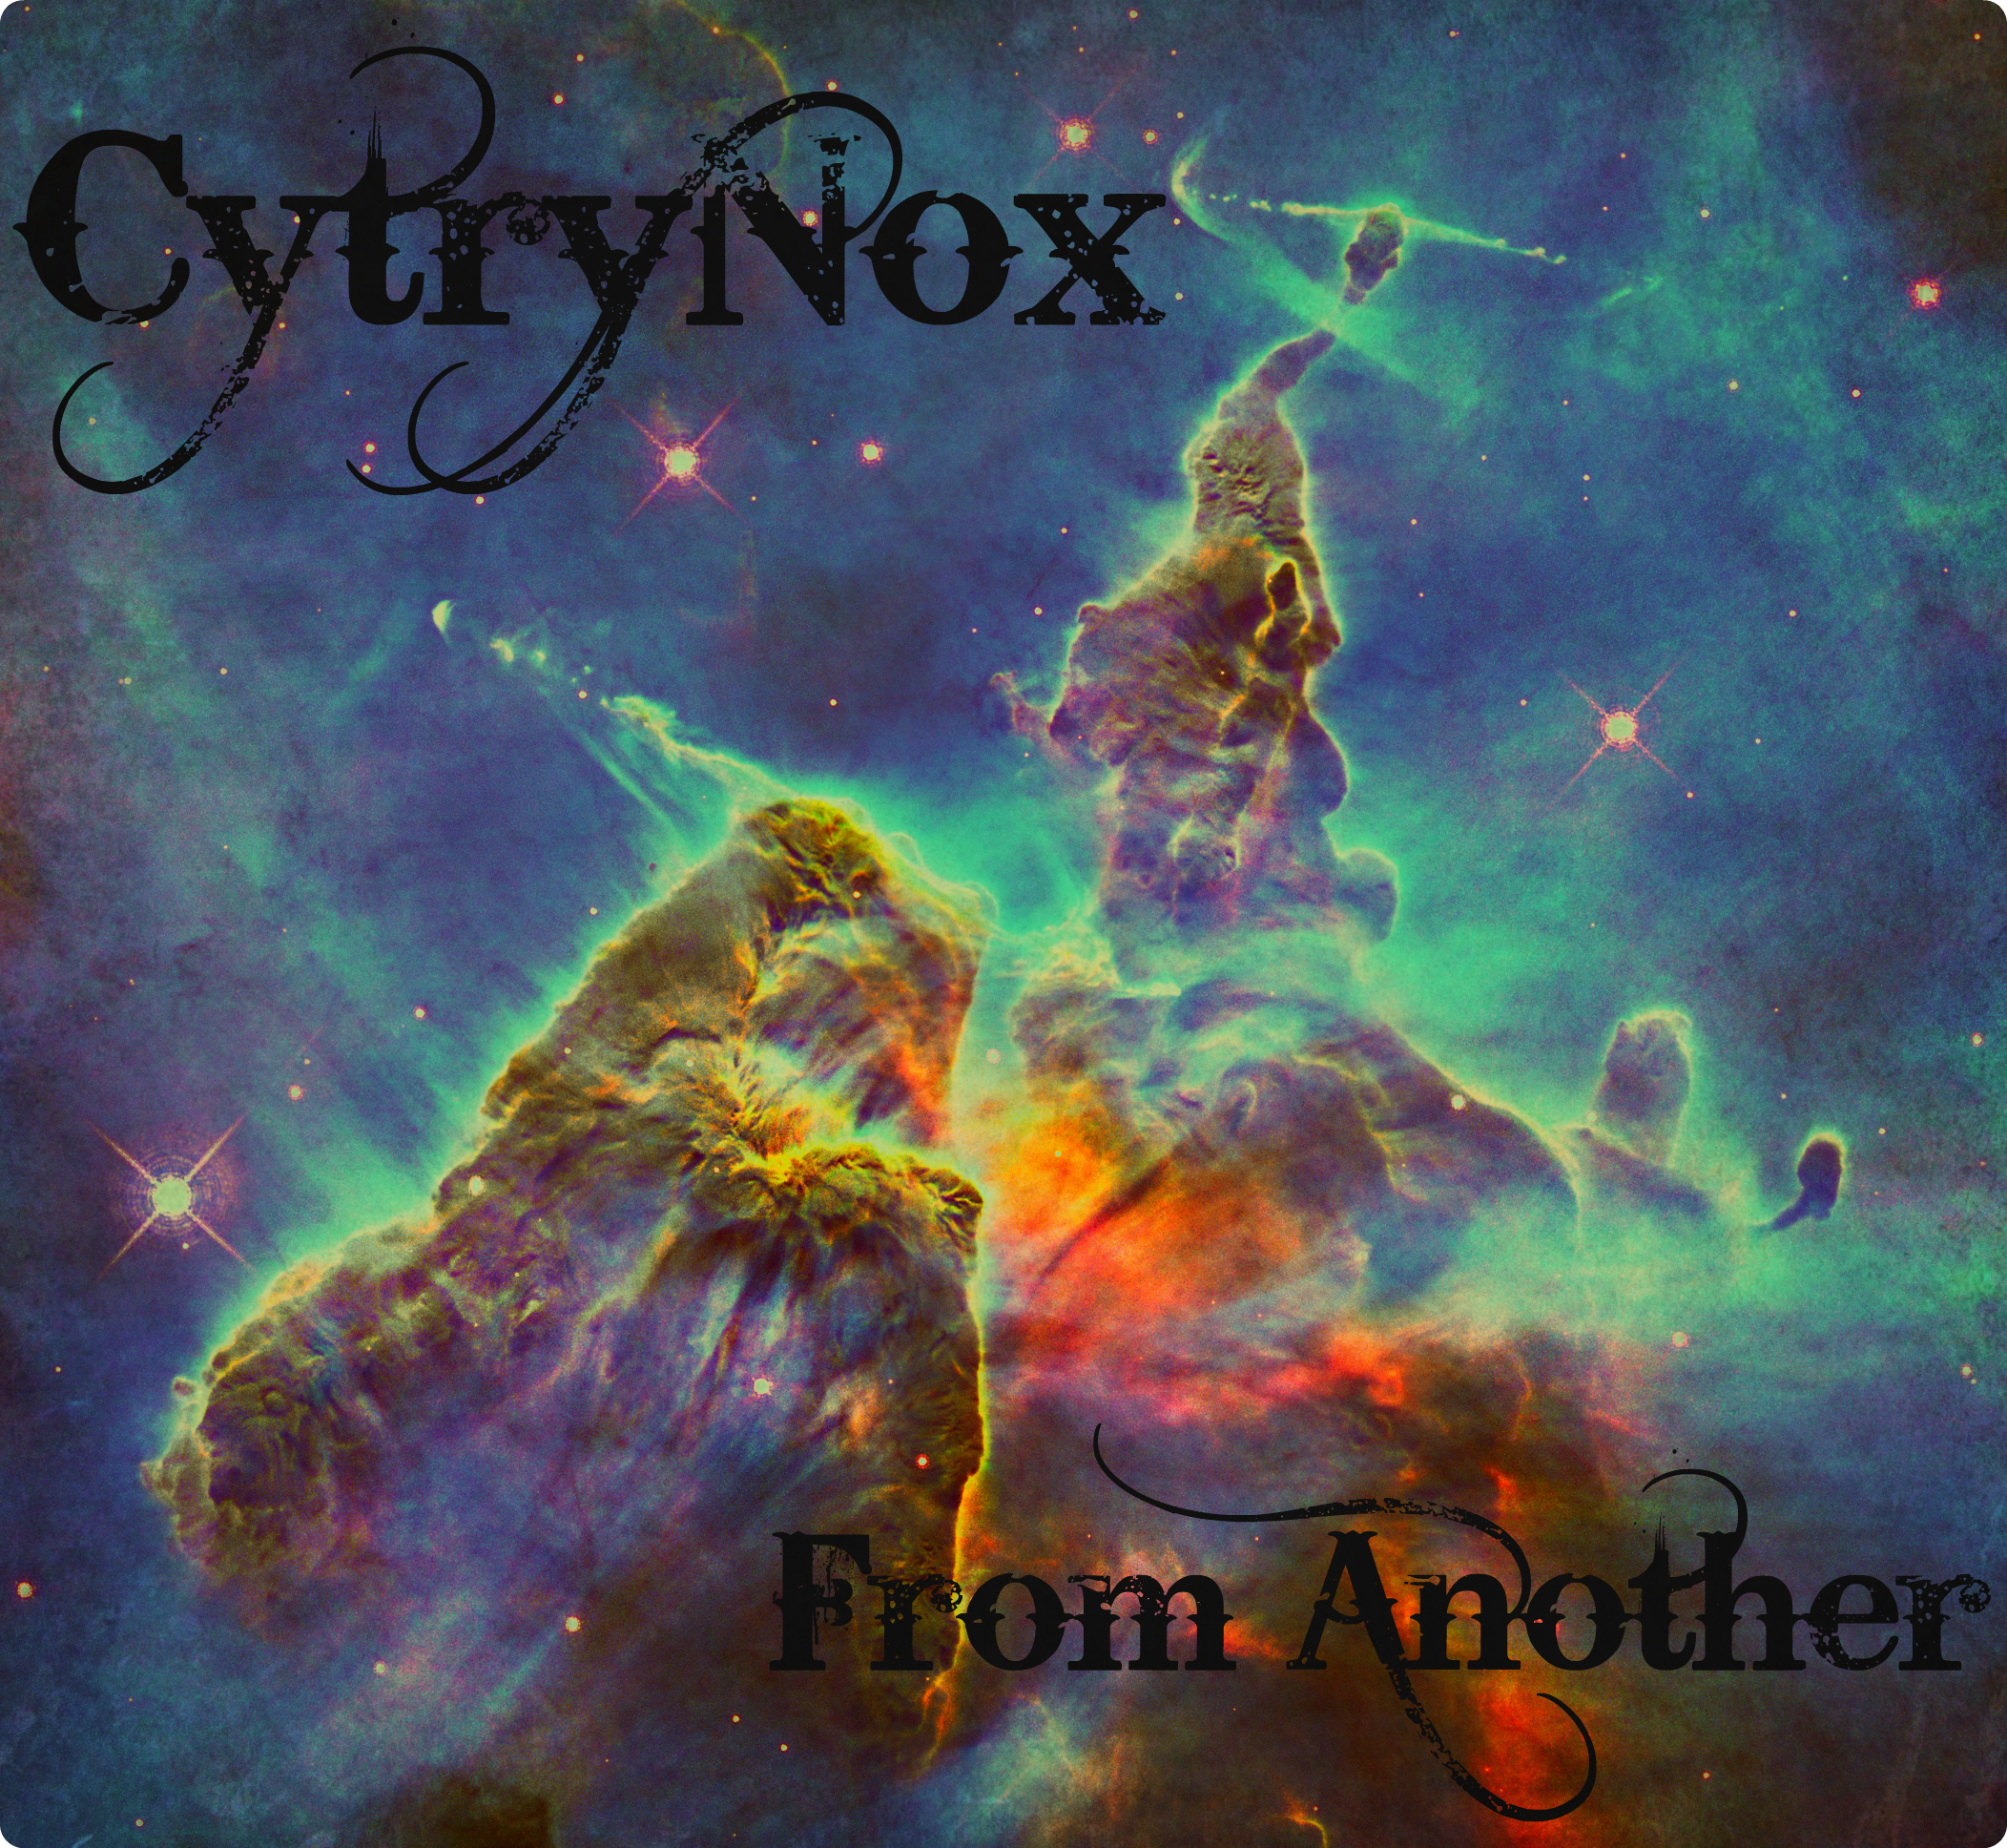 CytryNox- From Another